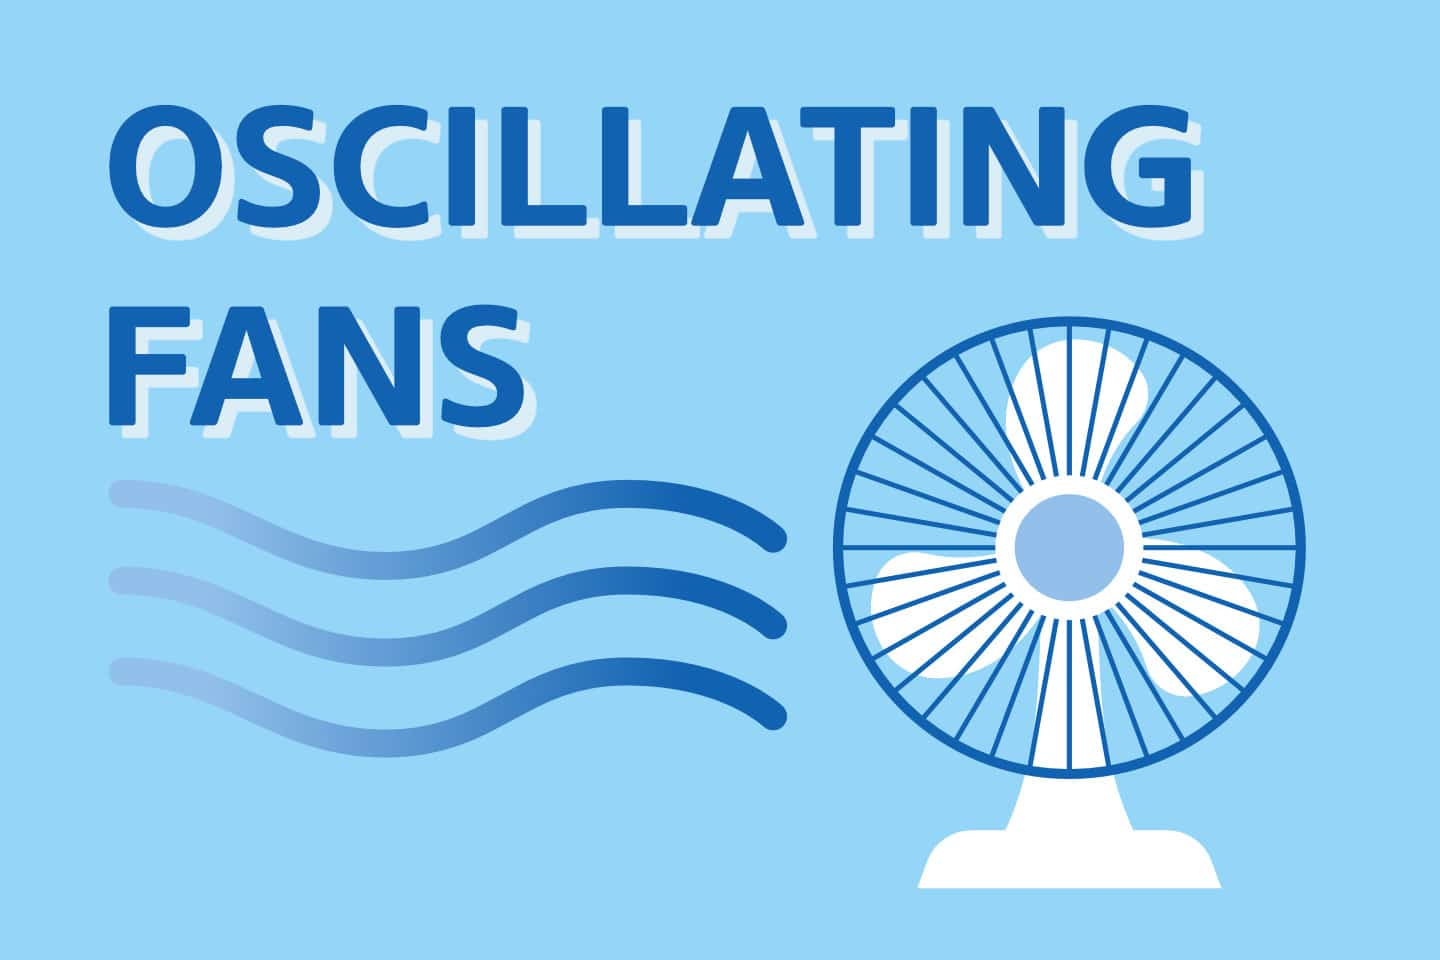 ❄️ Best Oscillating Fan [You Only Need This One]